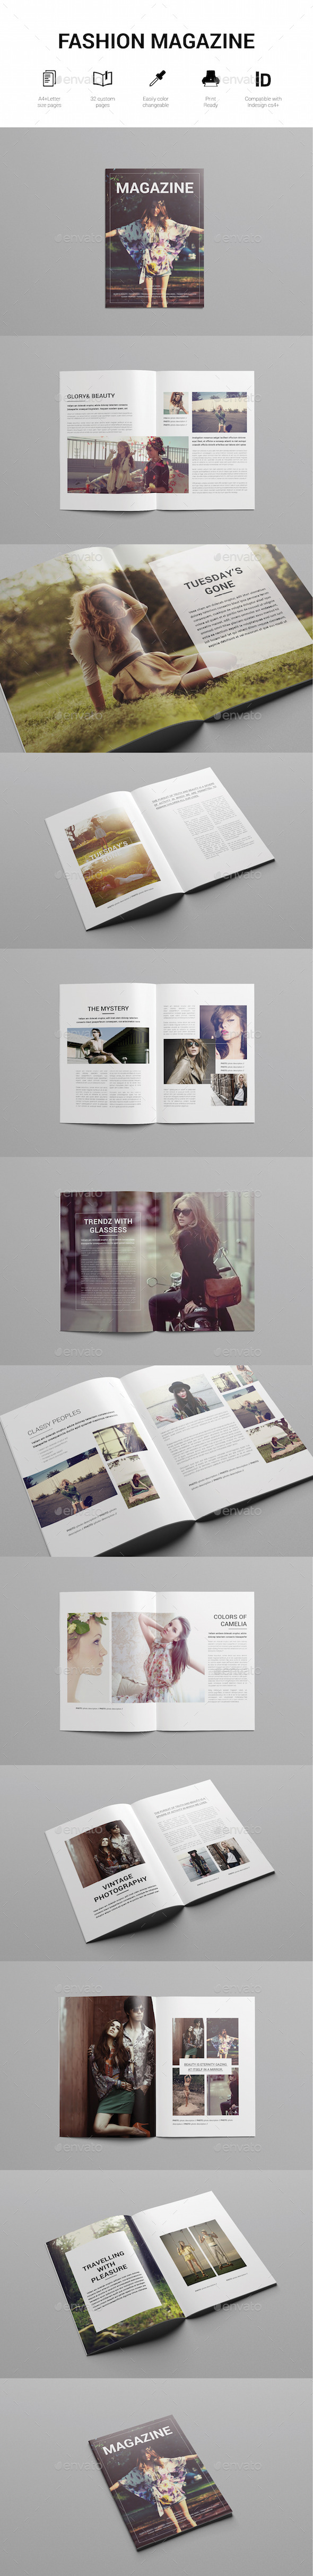 Minimal Fashion Magazine Template